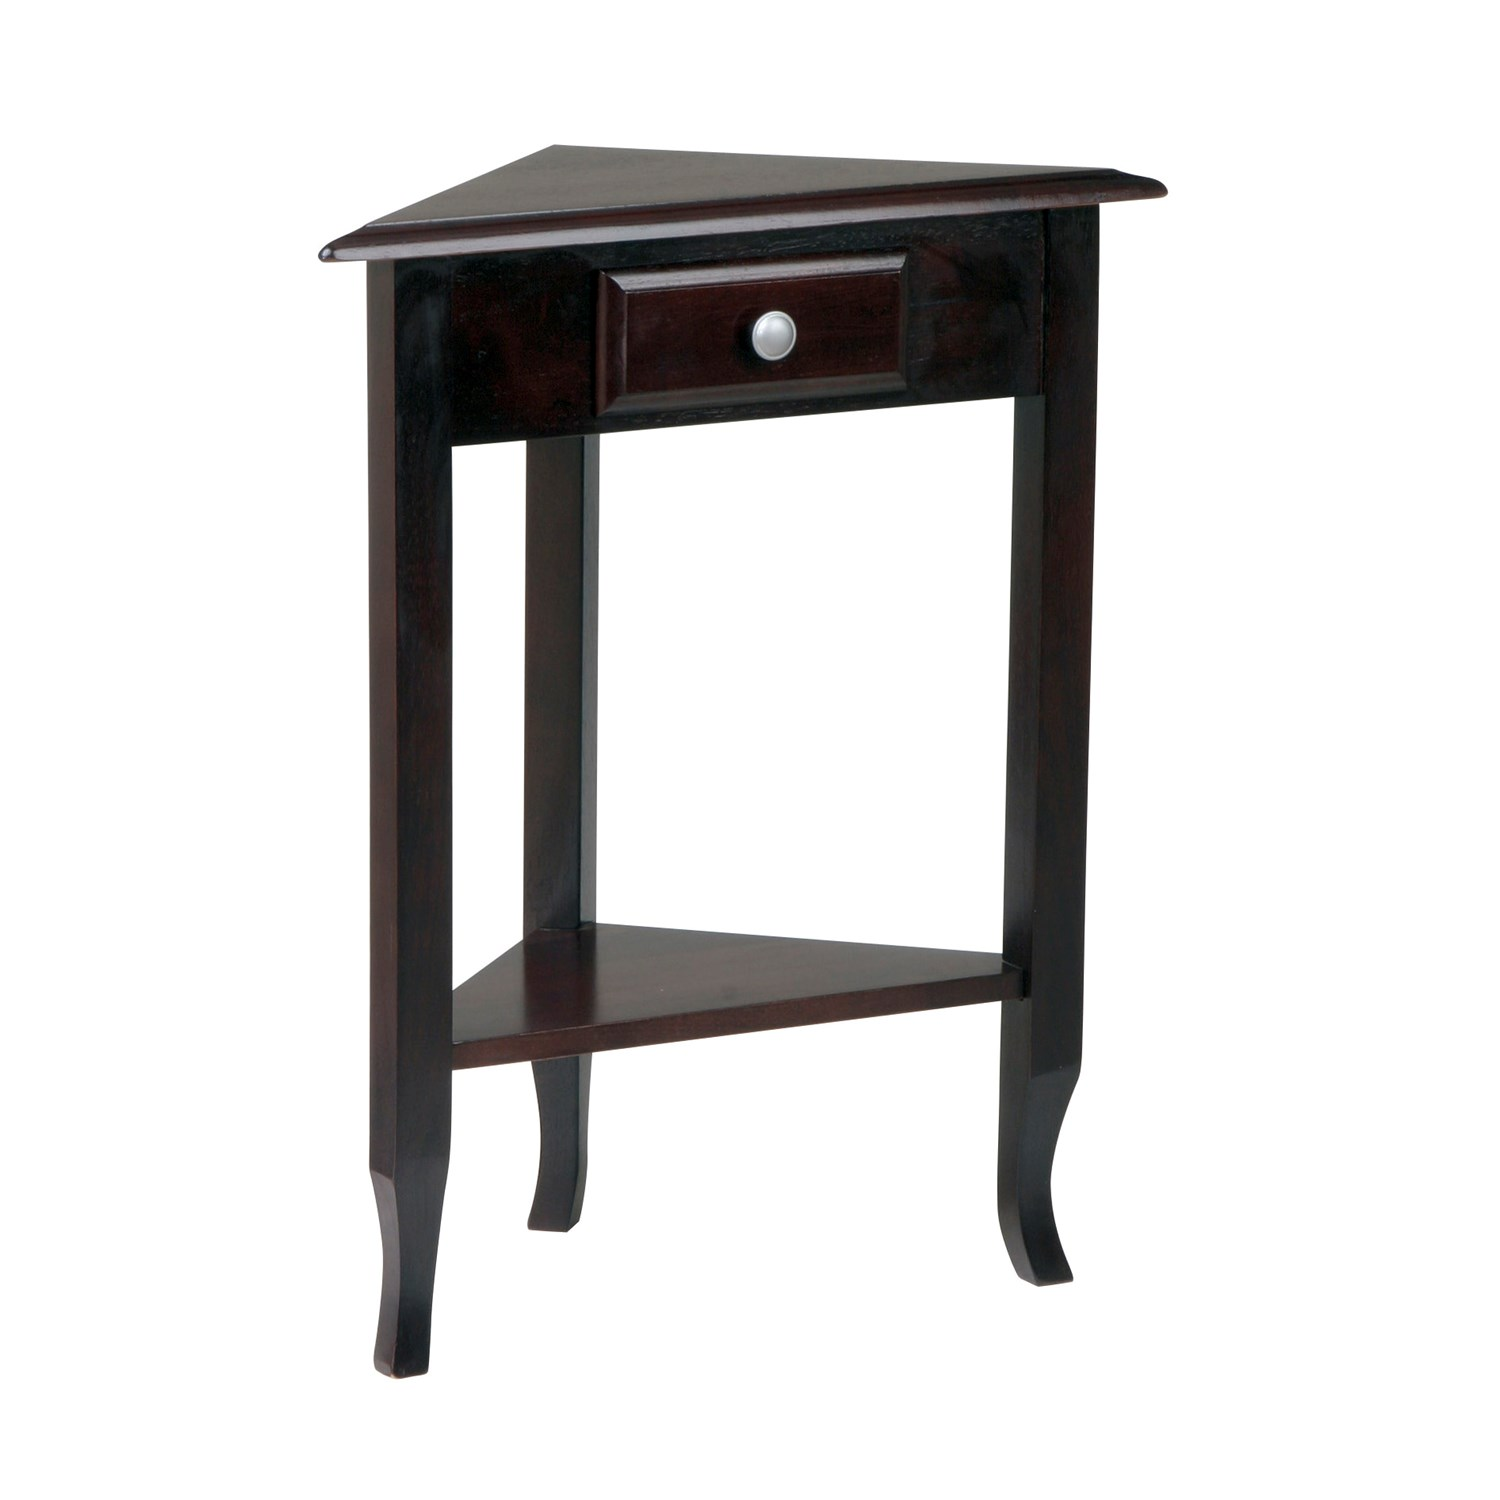 office star products merlot corner accent table white entryway furniture with mirror wood sofa pallet kitchen inch round cover metal patio set hourglass small centerpiece ideas